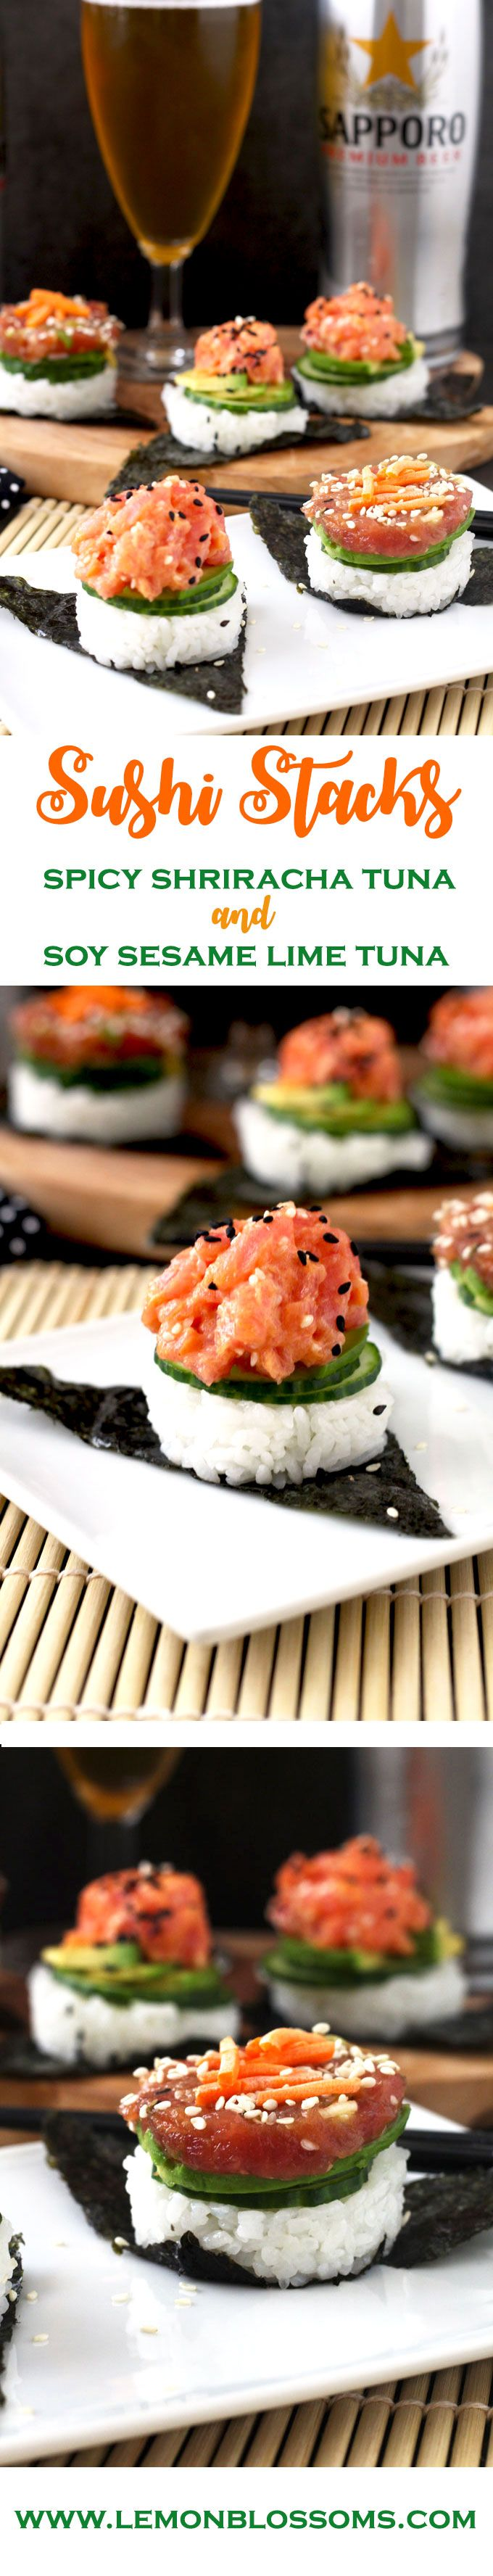 These easy to make, delicious and super flavorful sushi stacks are made with fresh tuna, sushi rice, cucumbers and avocado. Included in the recipe 2 different tuna preparations! Spicy Sriracha Tuna and Soy Sesame Lime. The perfect little bites to satisfy your sushi cravings. #easysushi #sushistack #sushi #tuna #ahituna #appetizer via @https://www.pinterest.com/lmnblossoms/